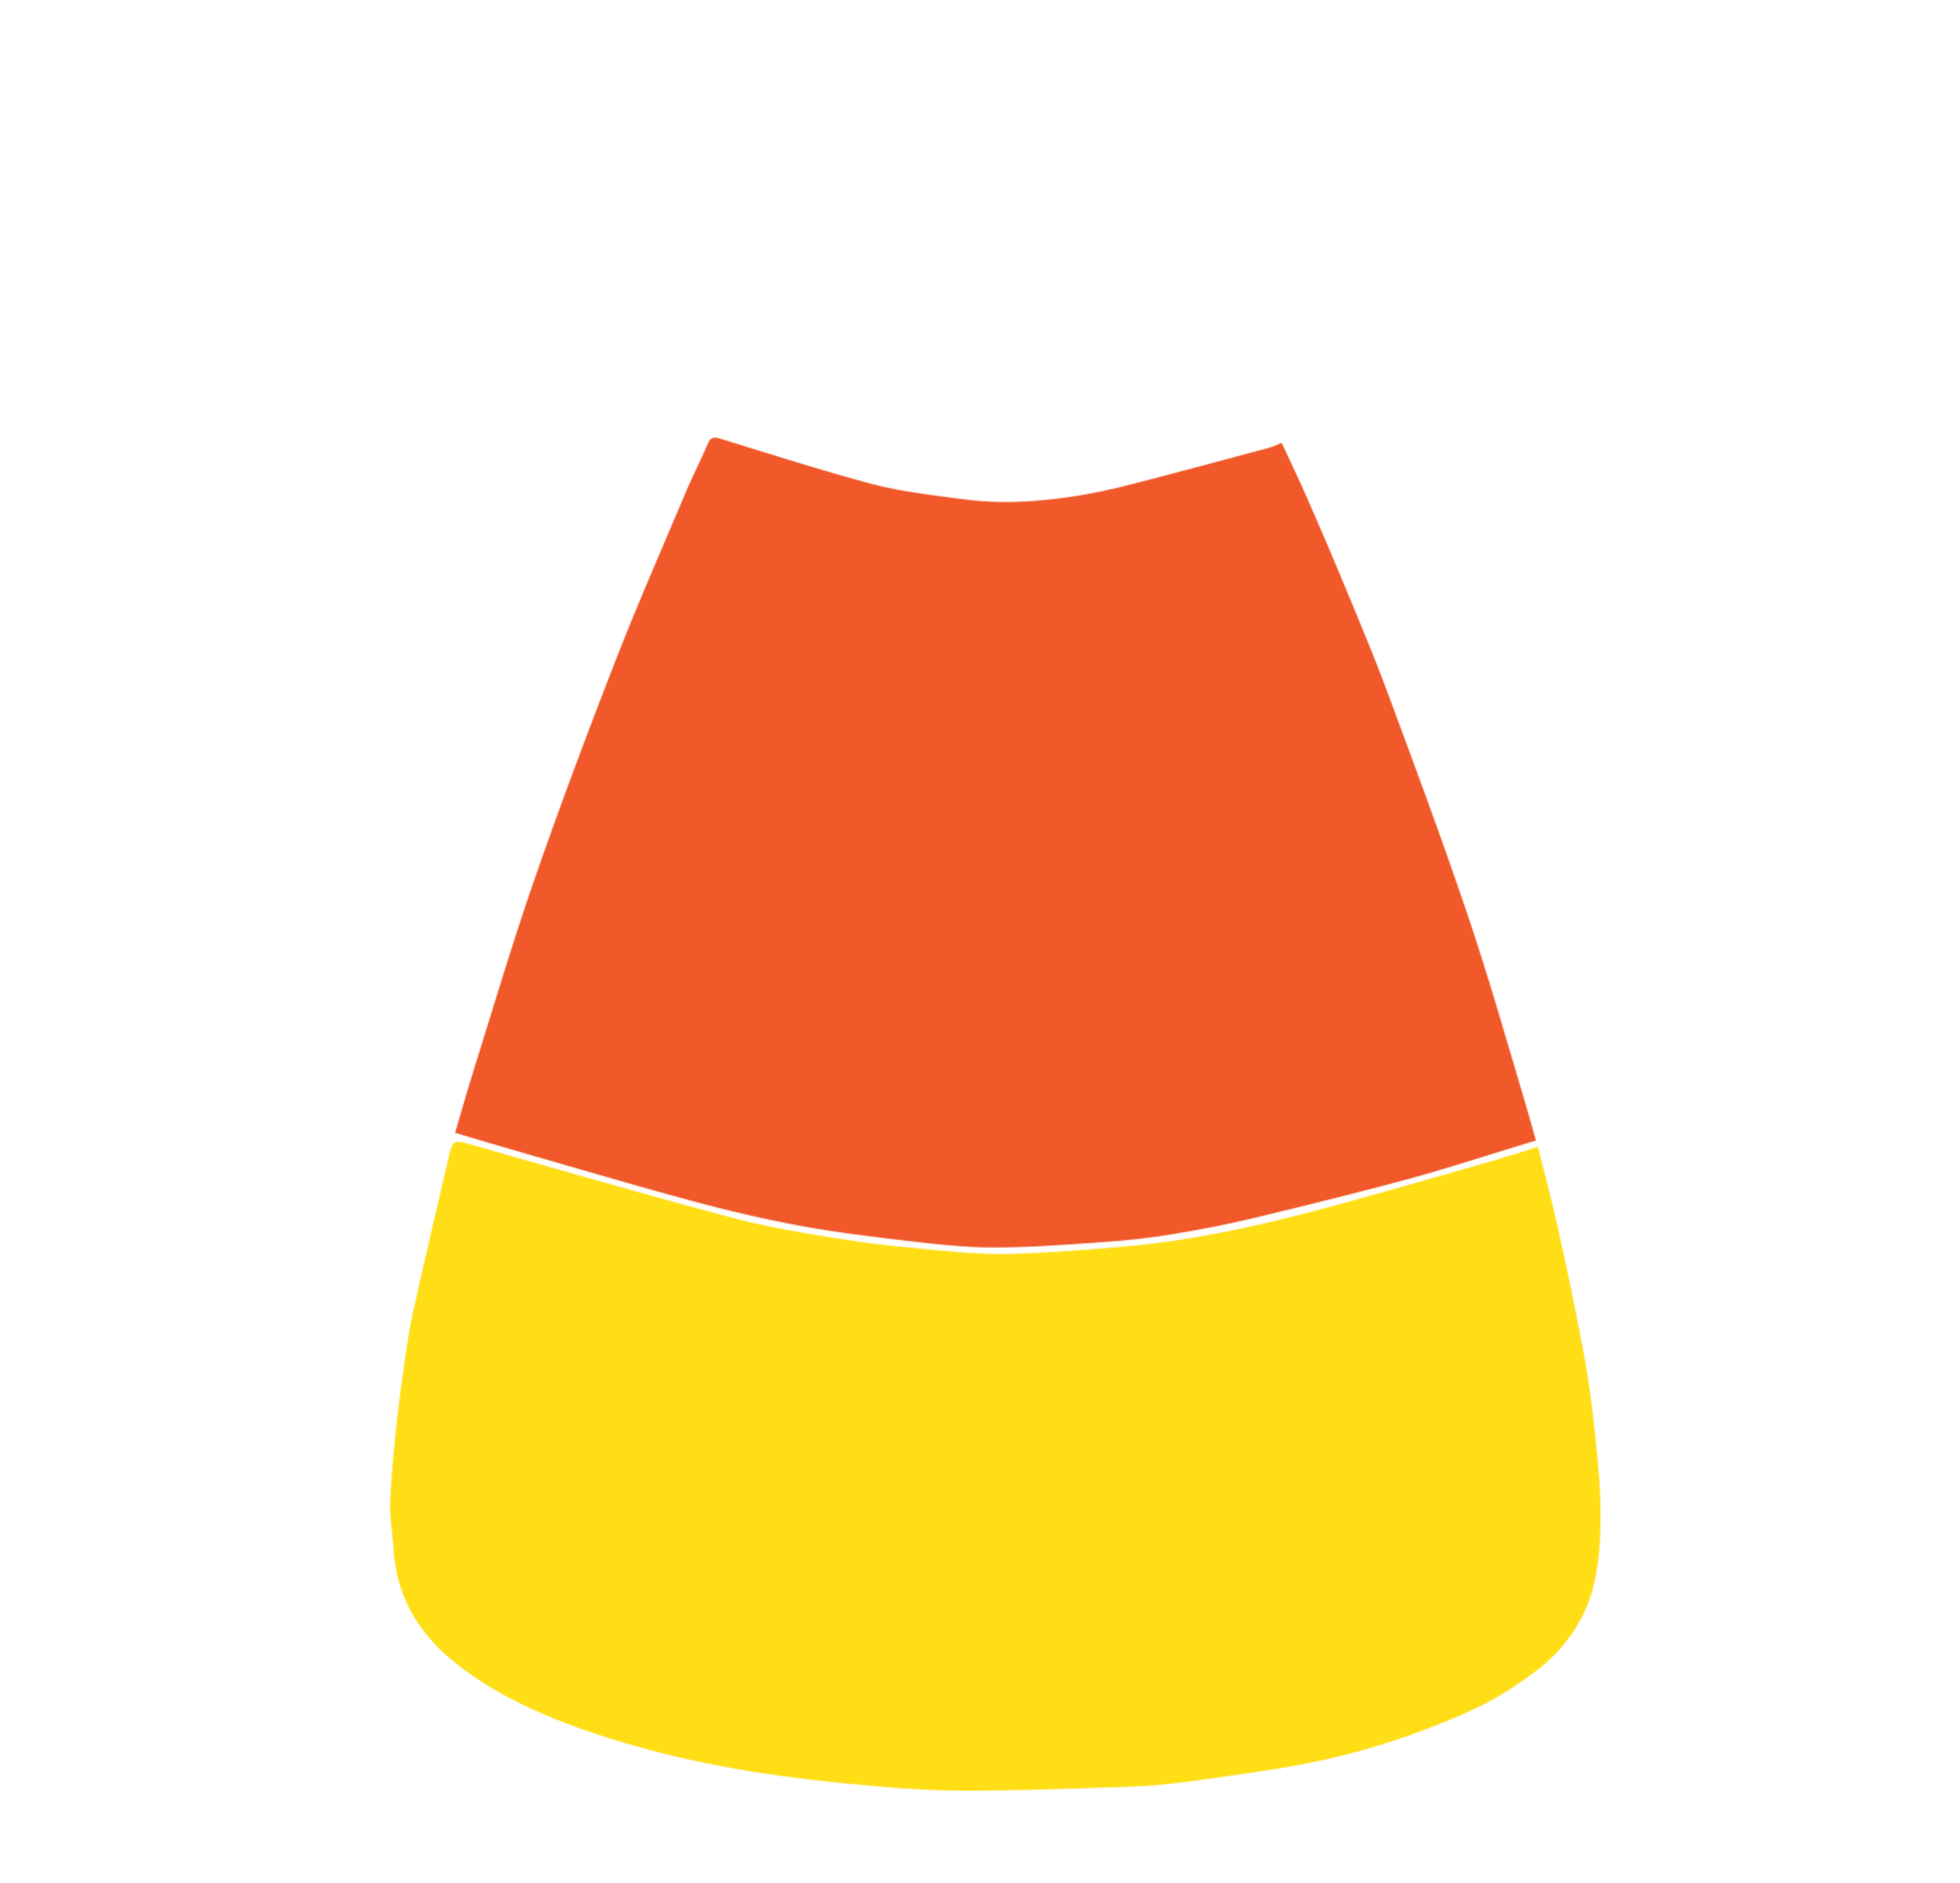 Candy Corn Clip Art   The Teehive